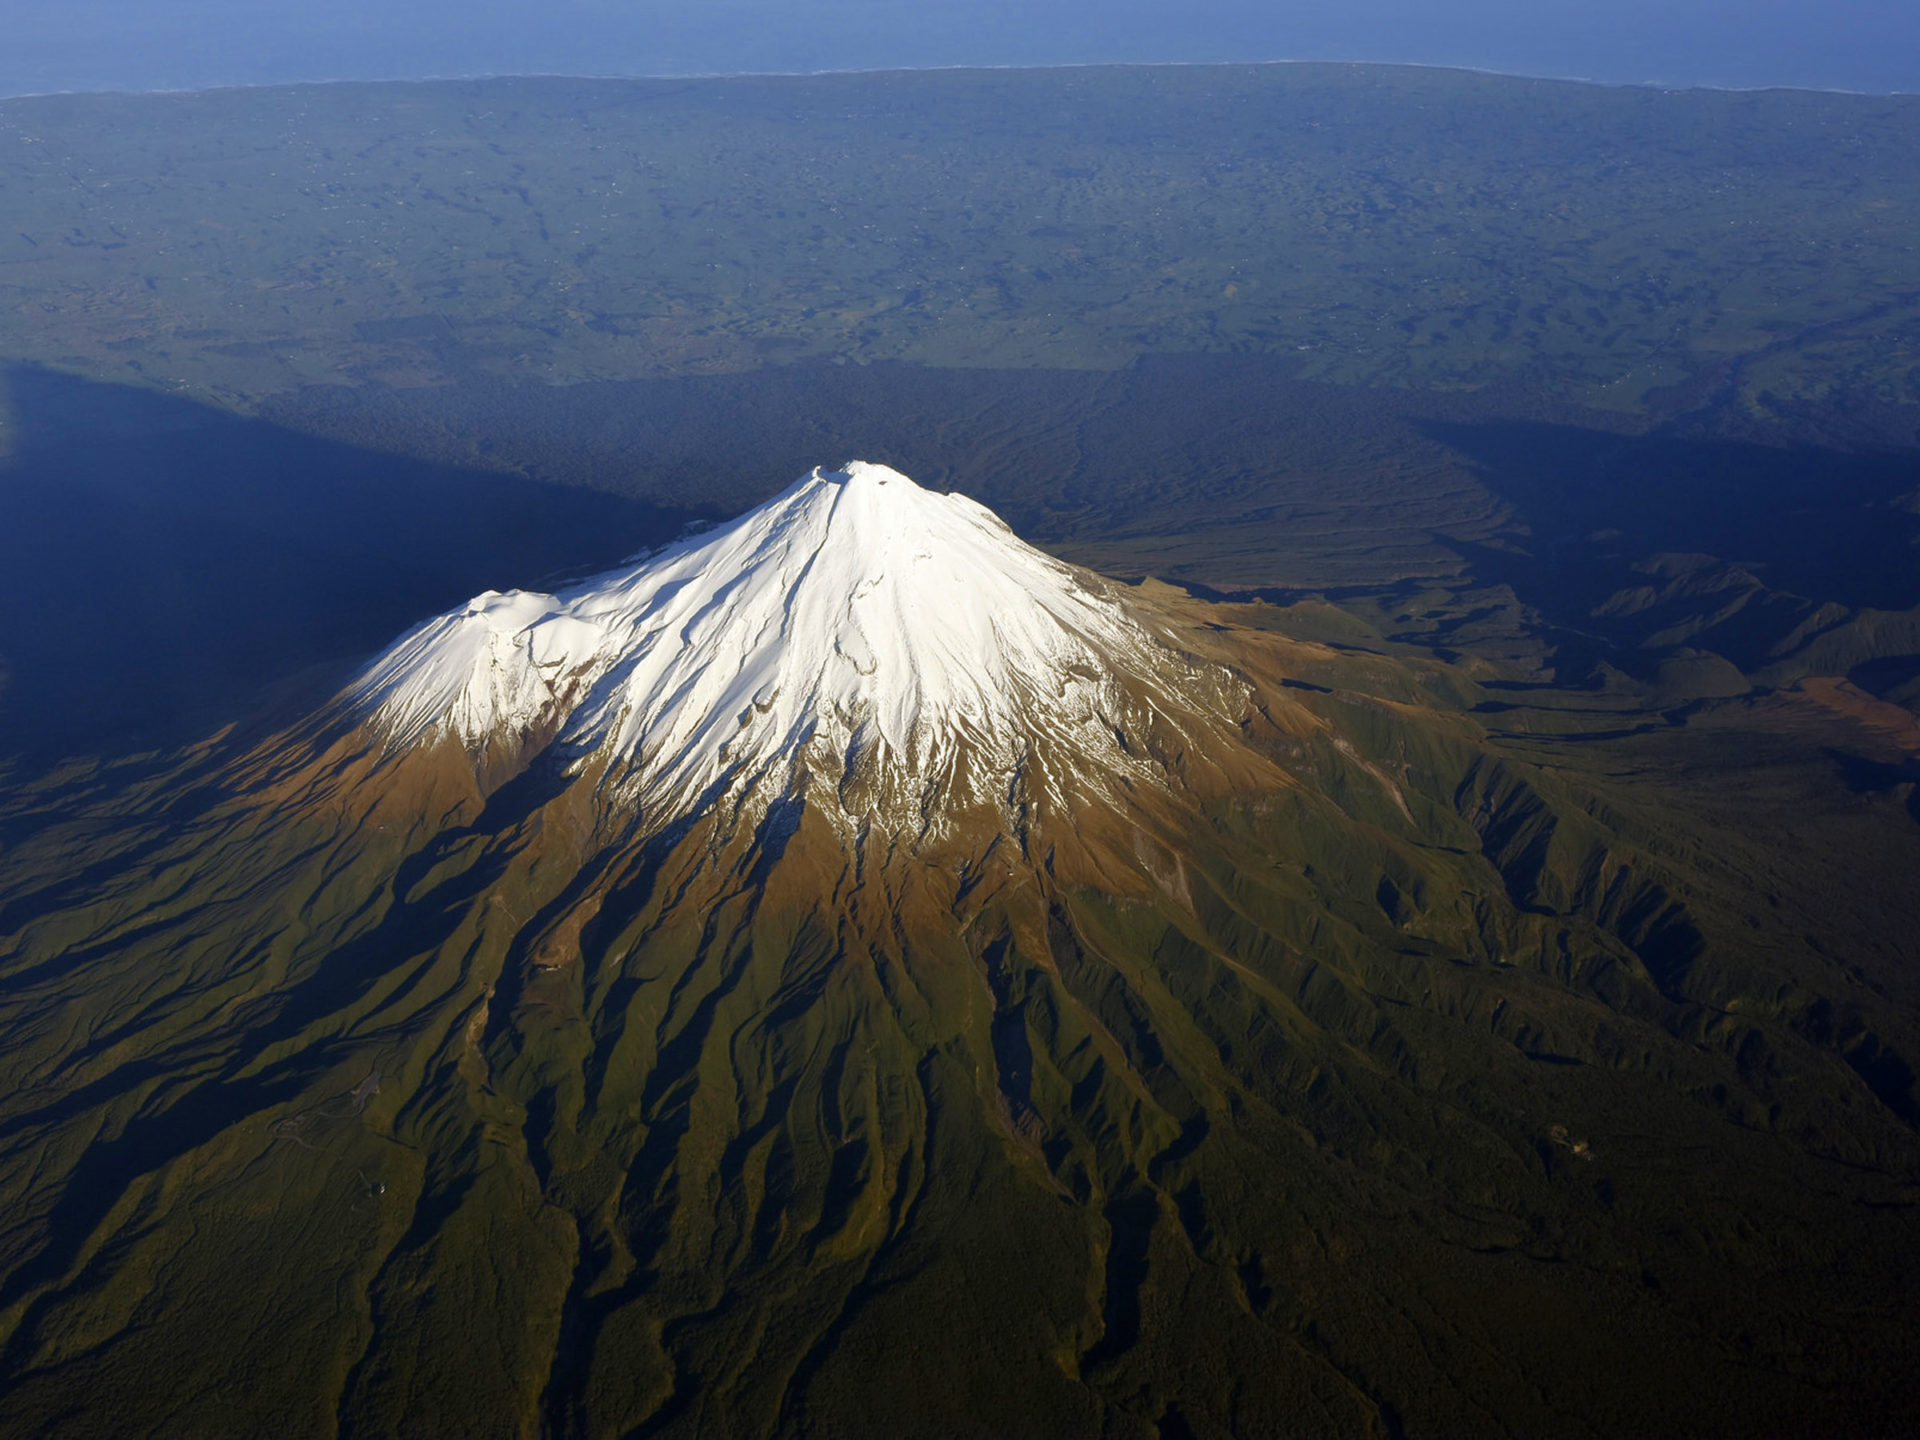 Natural Hd Wallpaper Download For Android Geographic Mount Taranaki The Shadow Speaks New Zealand